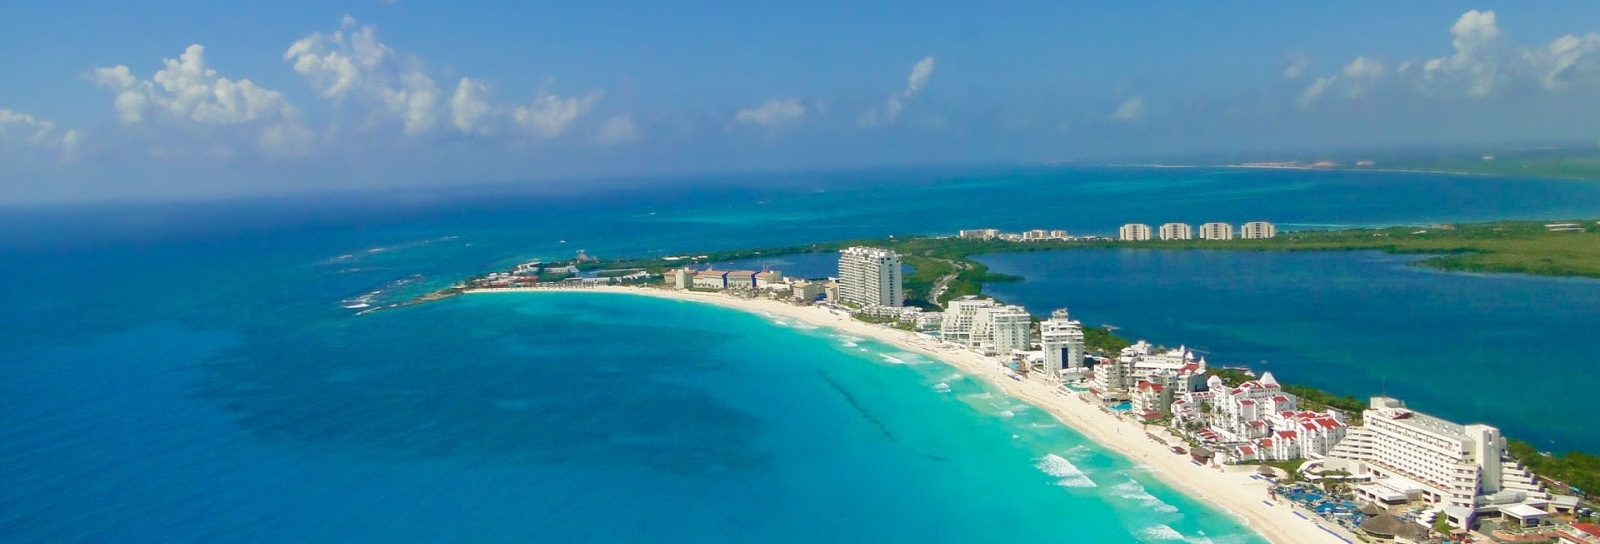 Cancun Vacations All Inclusive Vacations To Cancun And Riviera Maya